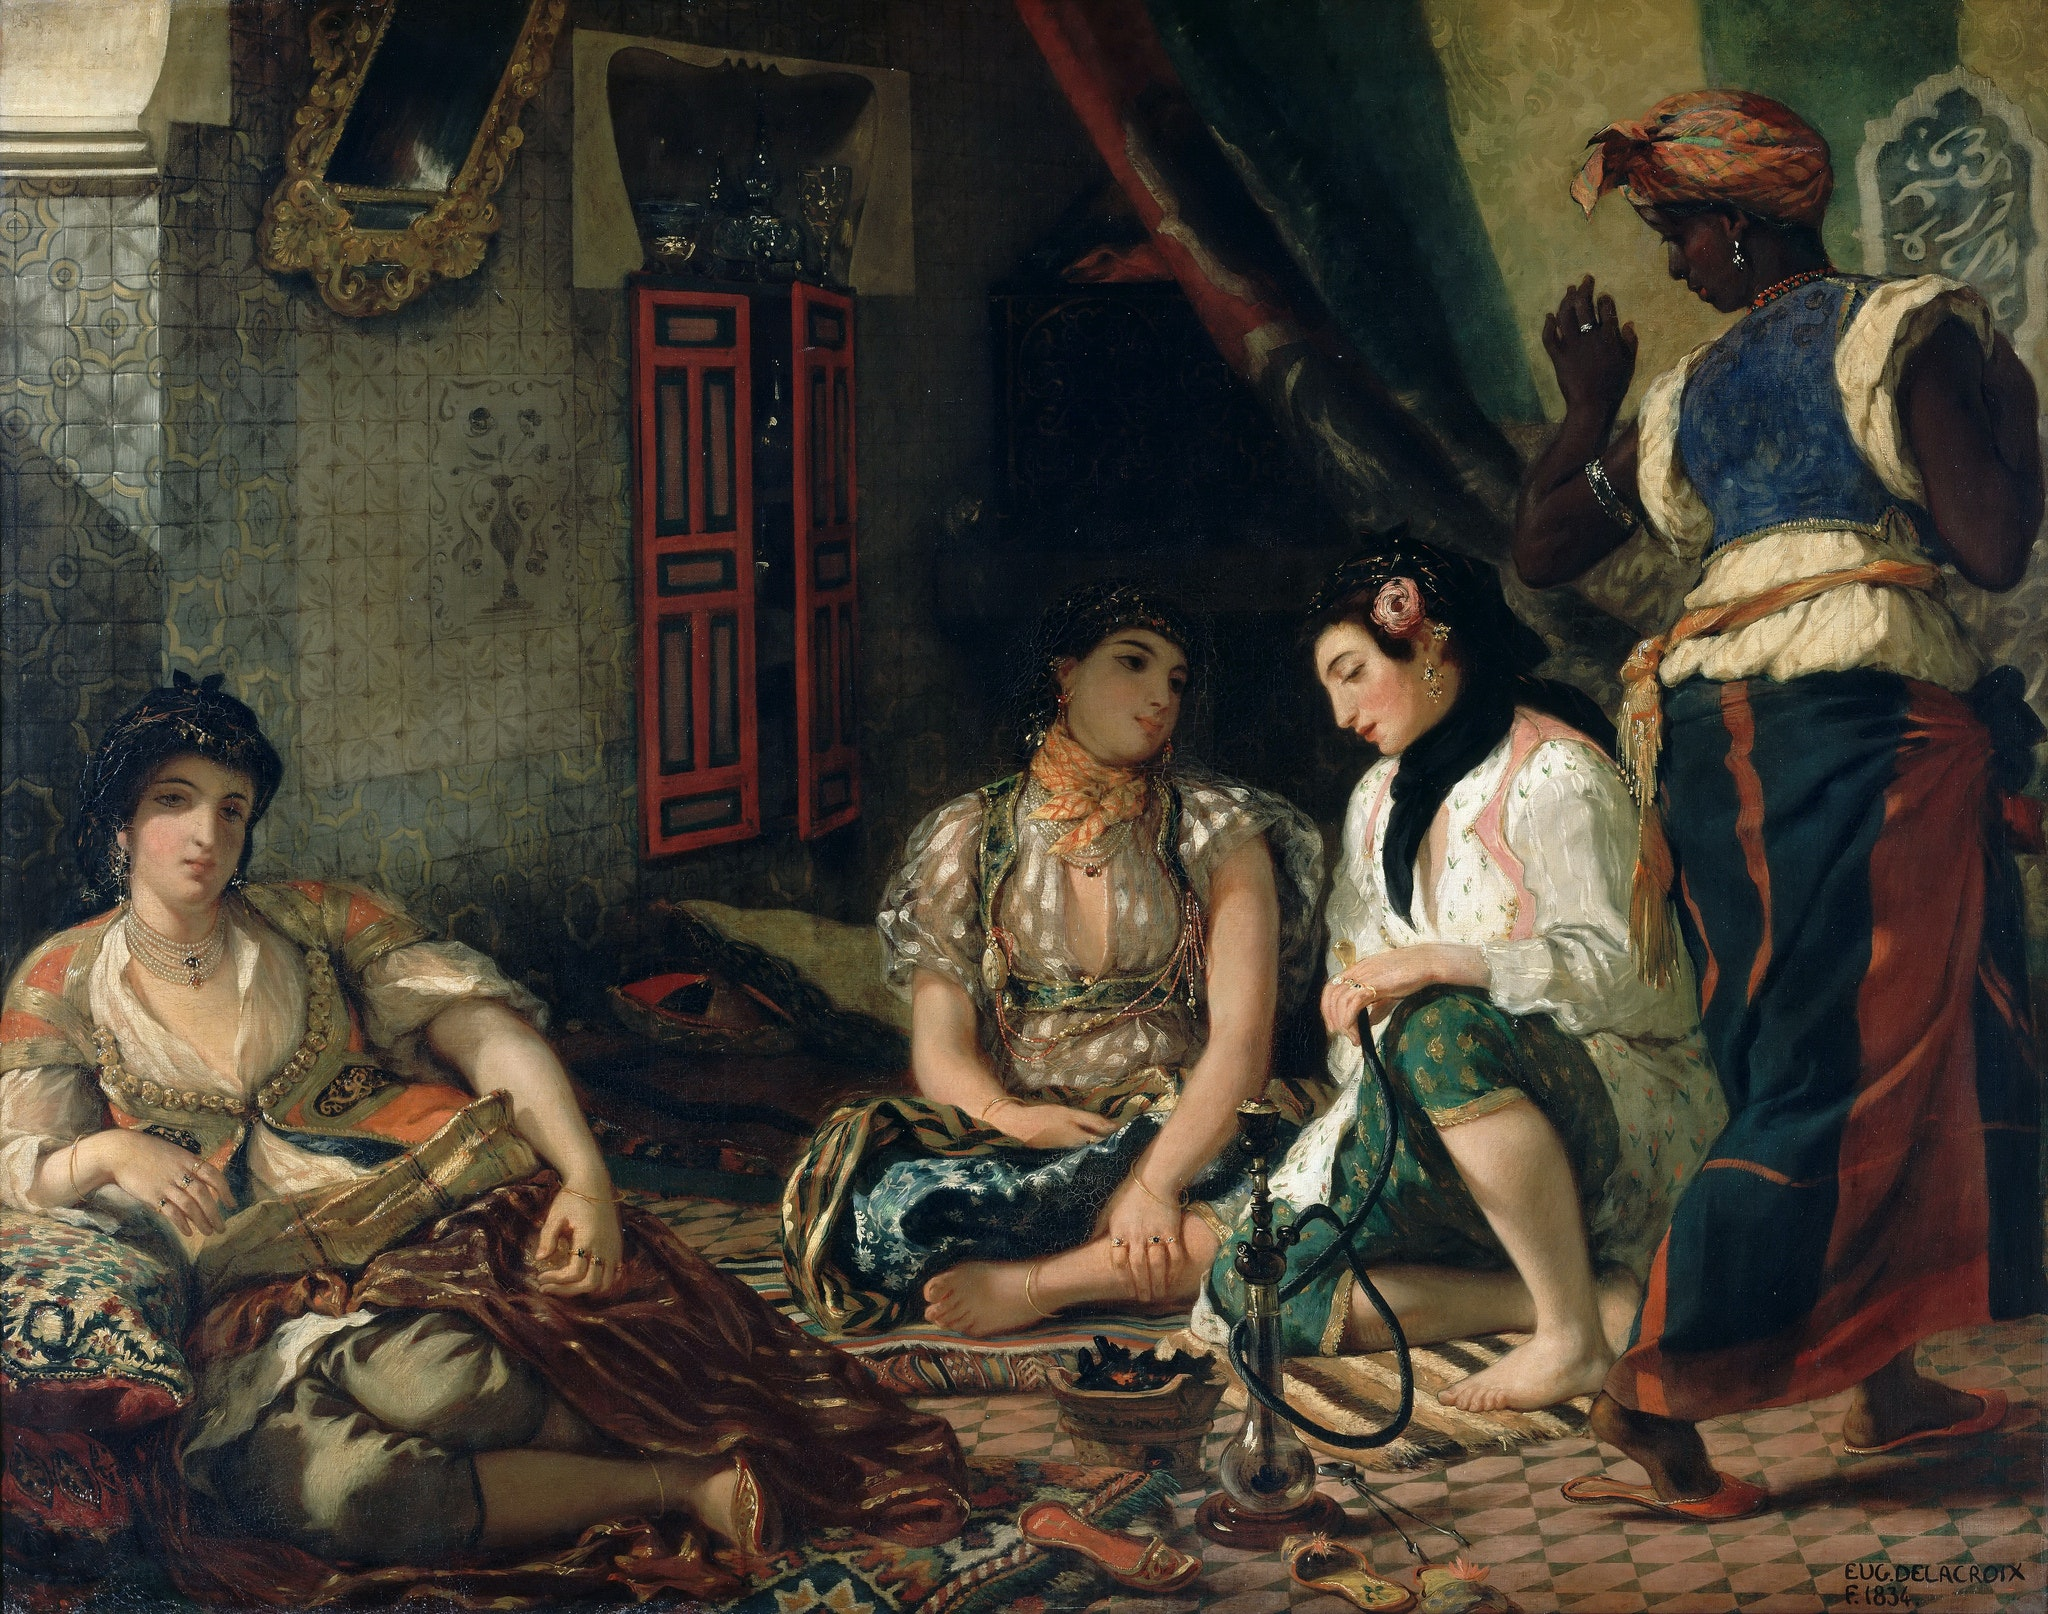 Delacroix returned from his trip to North Africa inspired. He would go on to paint 'The Women of Algiers in Their Apartment' (1834)